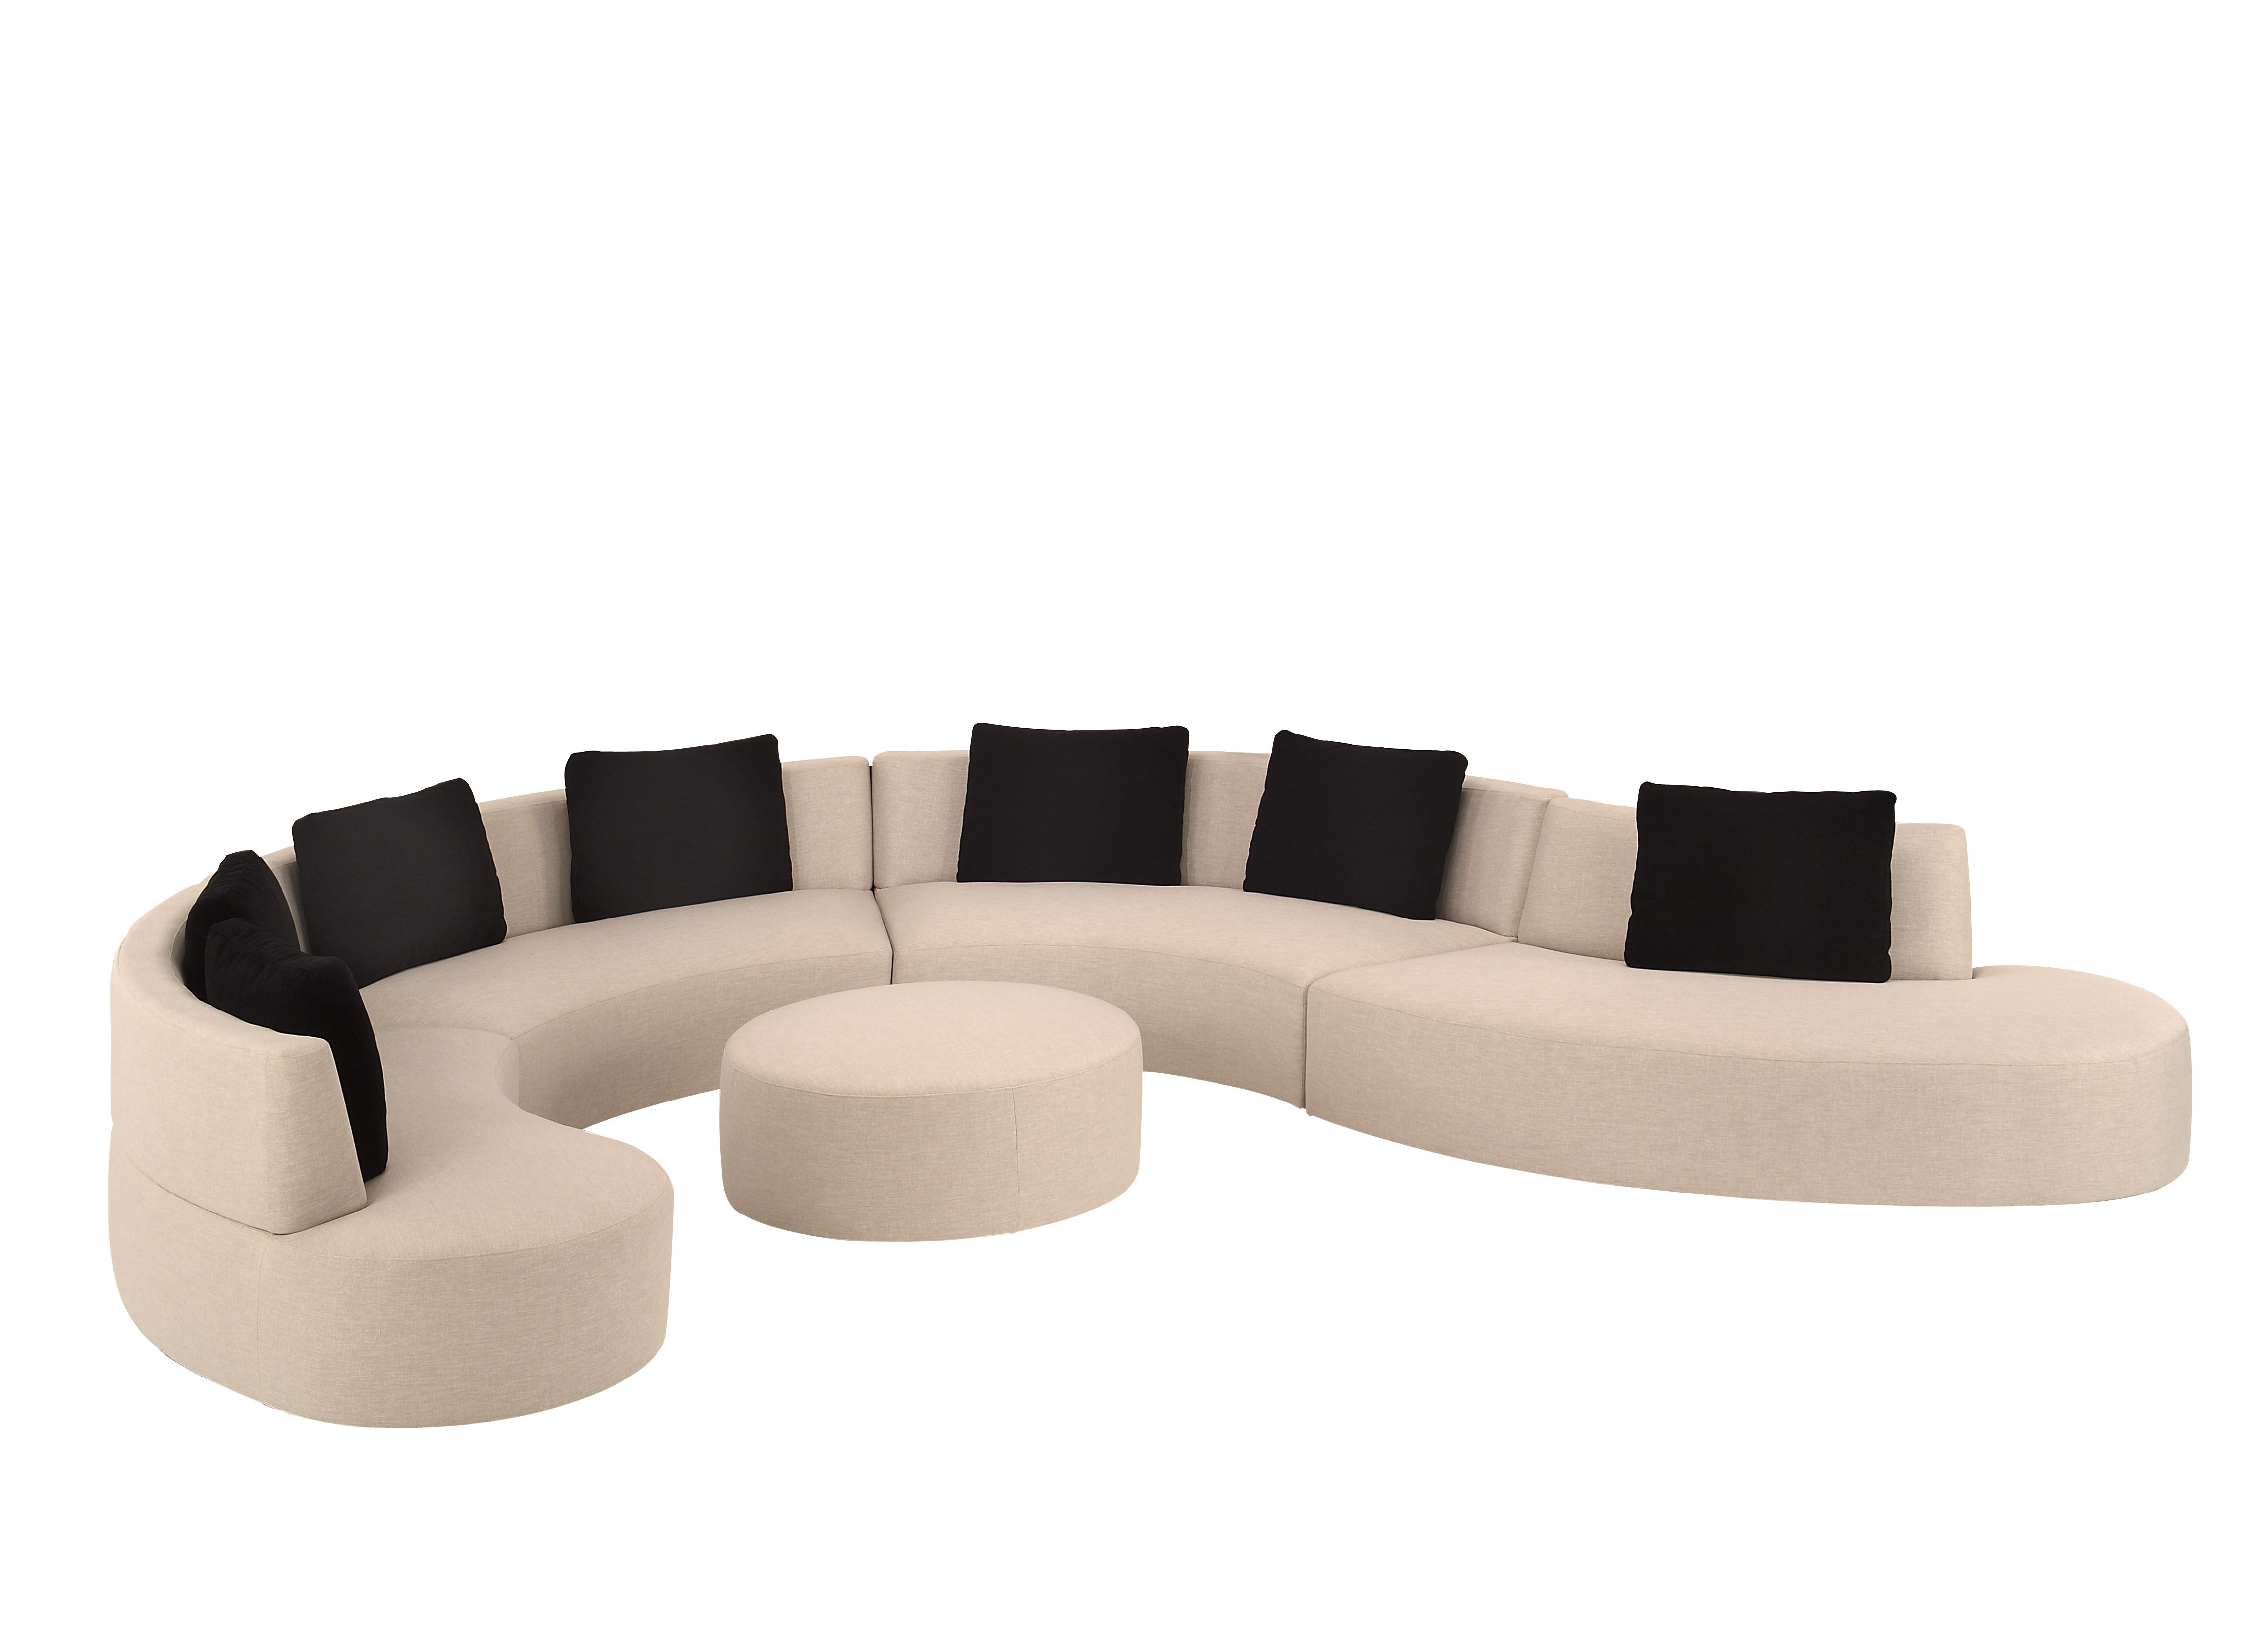 Curved Sectional | Curved Outdoor Sectional | Small Curved Sofas